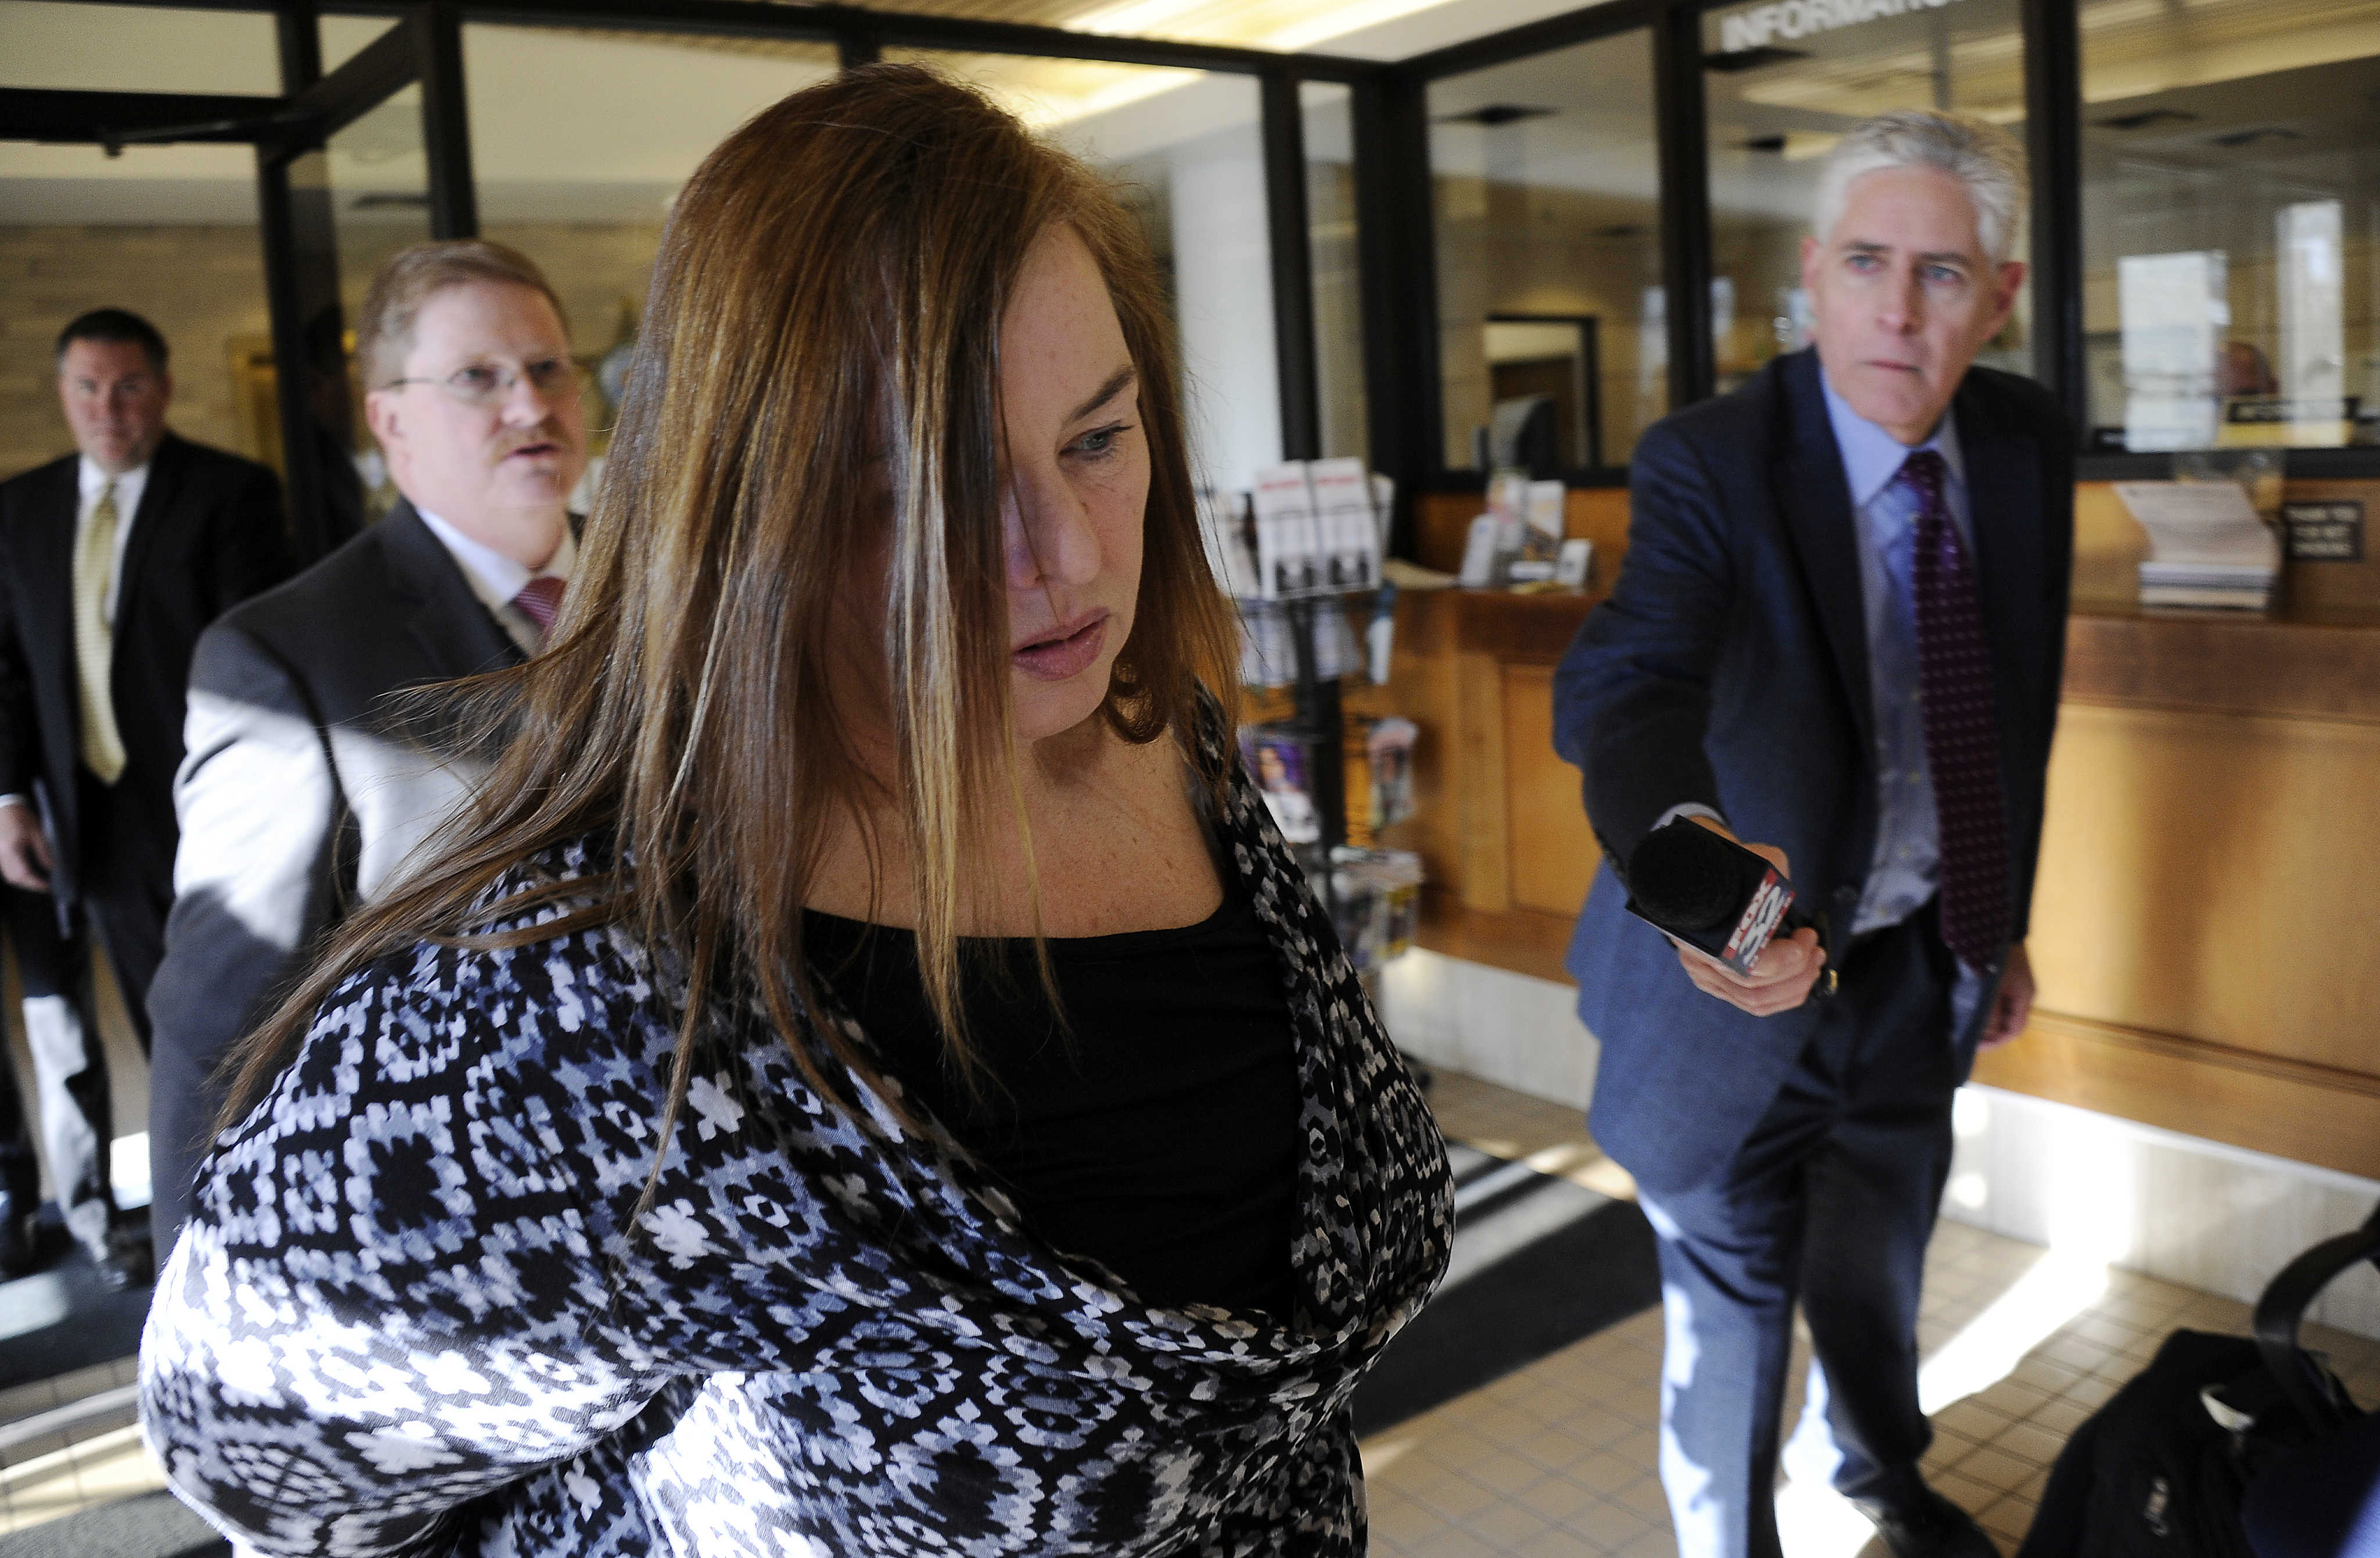 Melodie Gliniewicz, 51, of Antioch,Ill.,  appearars at the Lake County sheriff's office after she was indicted in Waukegan, Ill., by a Lake County grand jury.